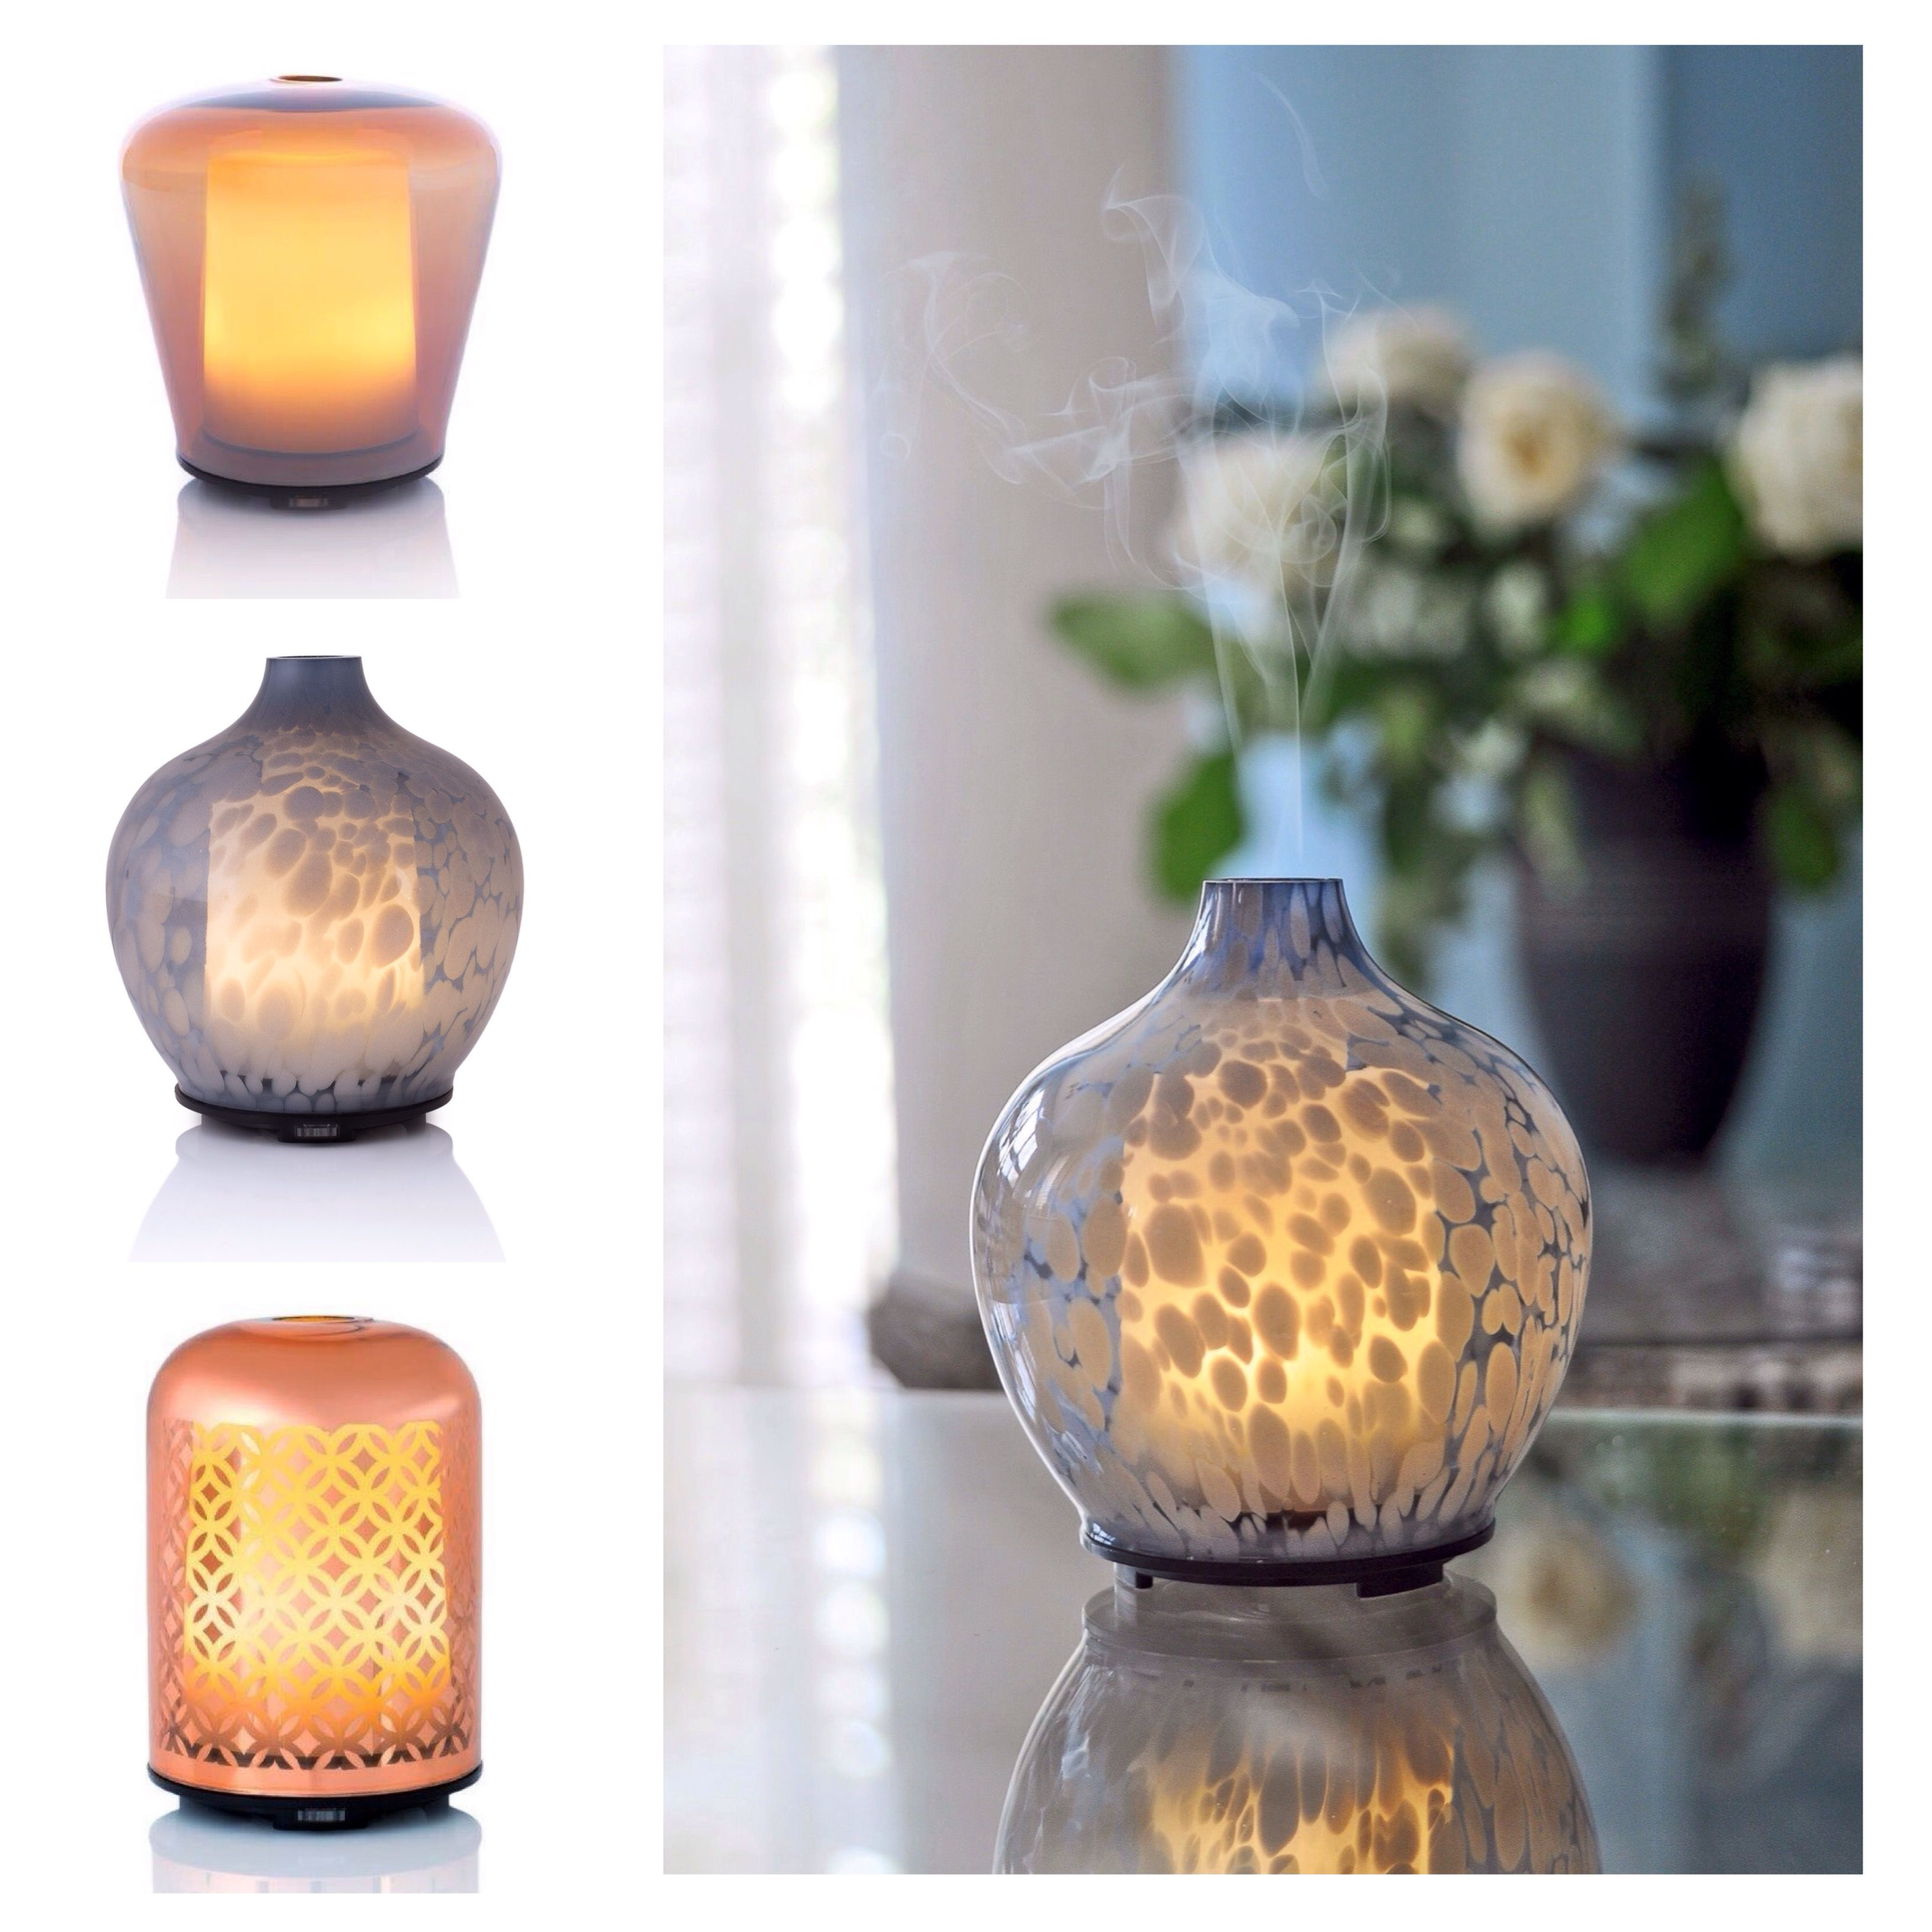 Madebyzen Nitrum Rosso Mercura Aroma Diffusers Add A Little Luxury To Your Home